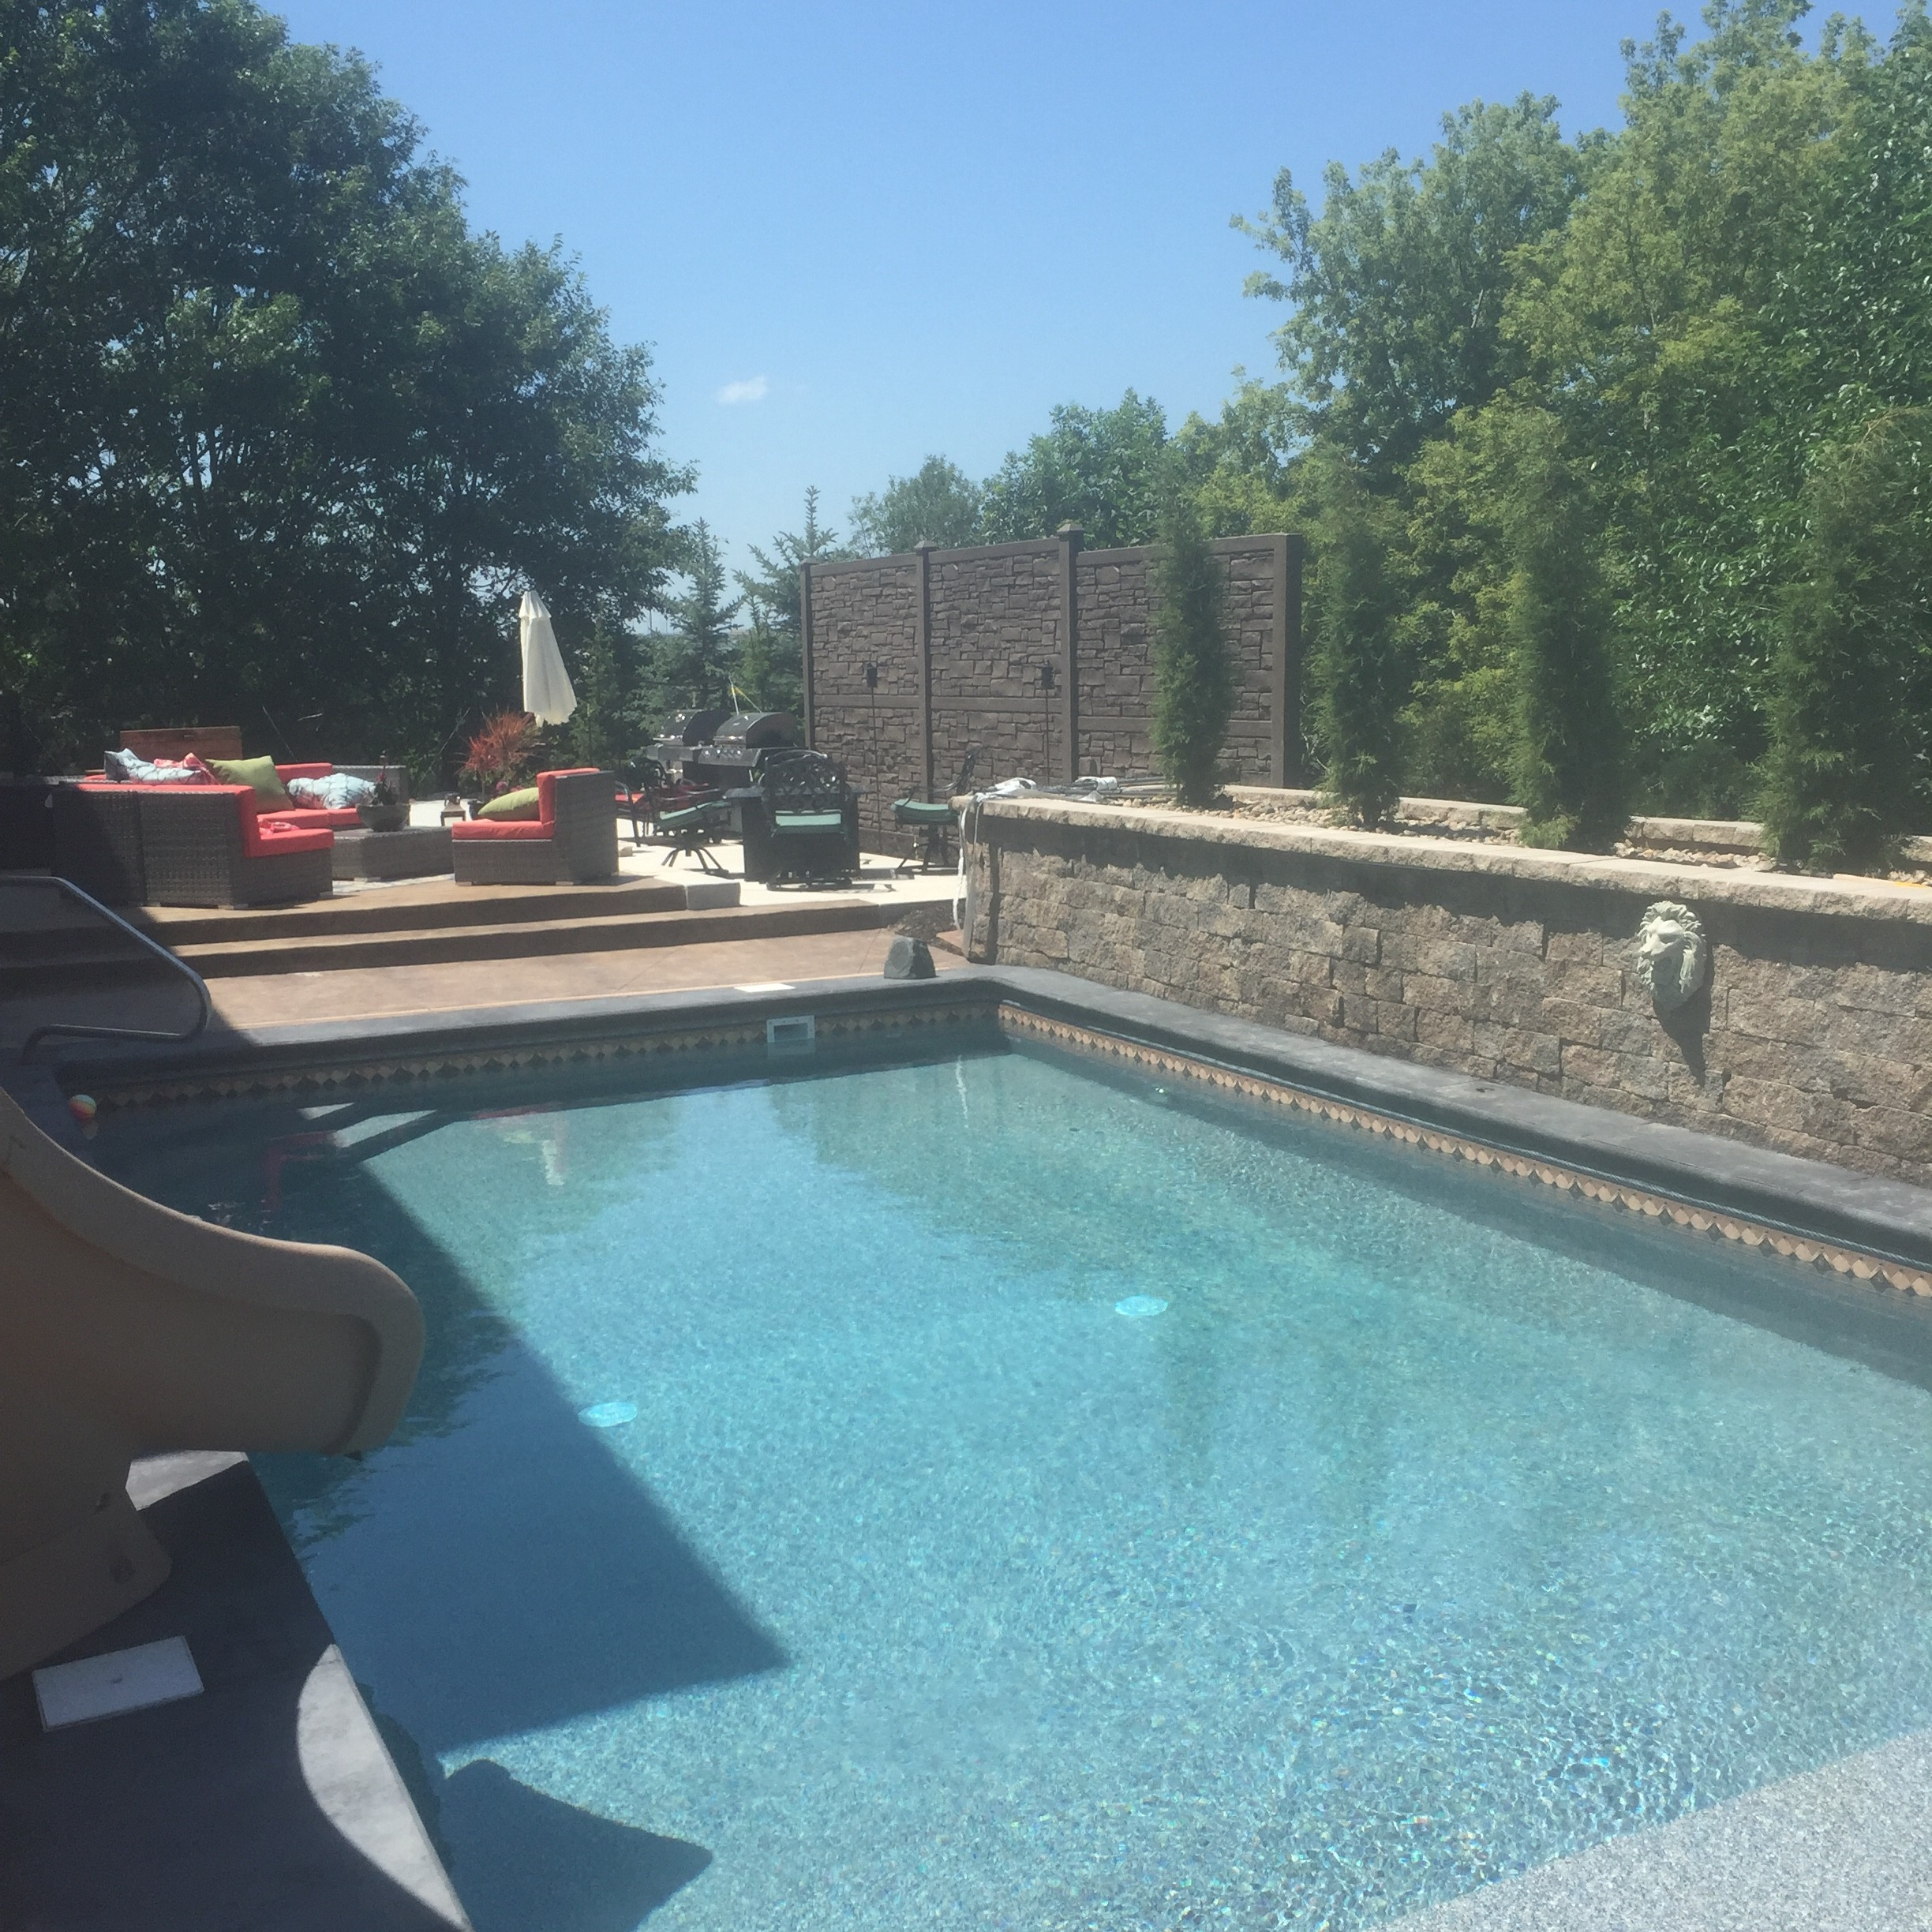 Omaha pool design renovations builder artisan pools for Pool design omaha